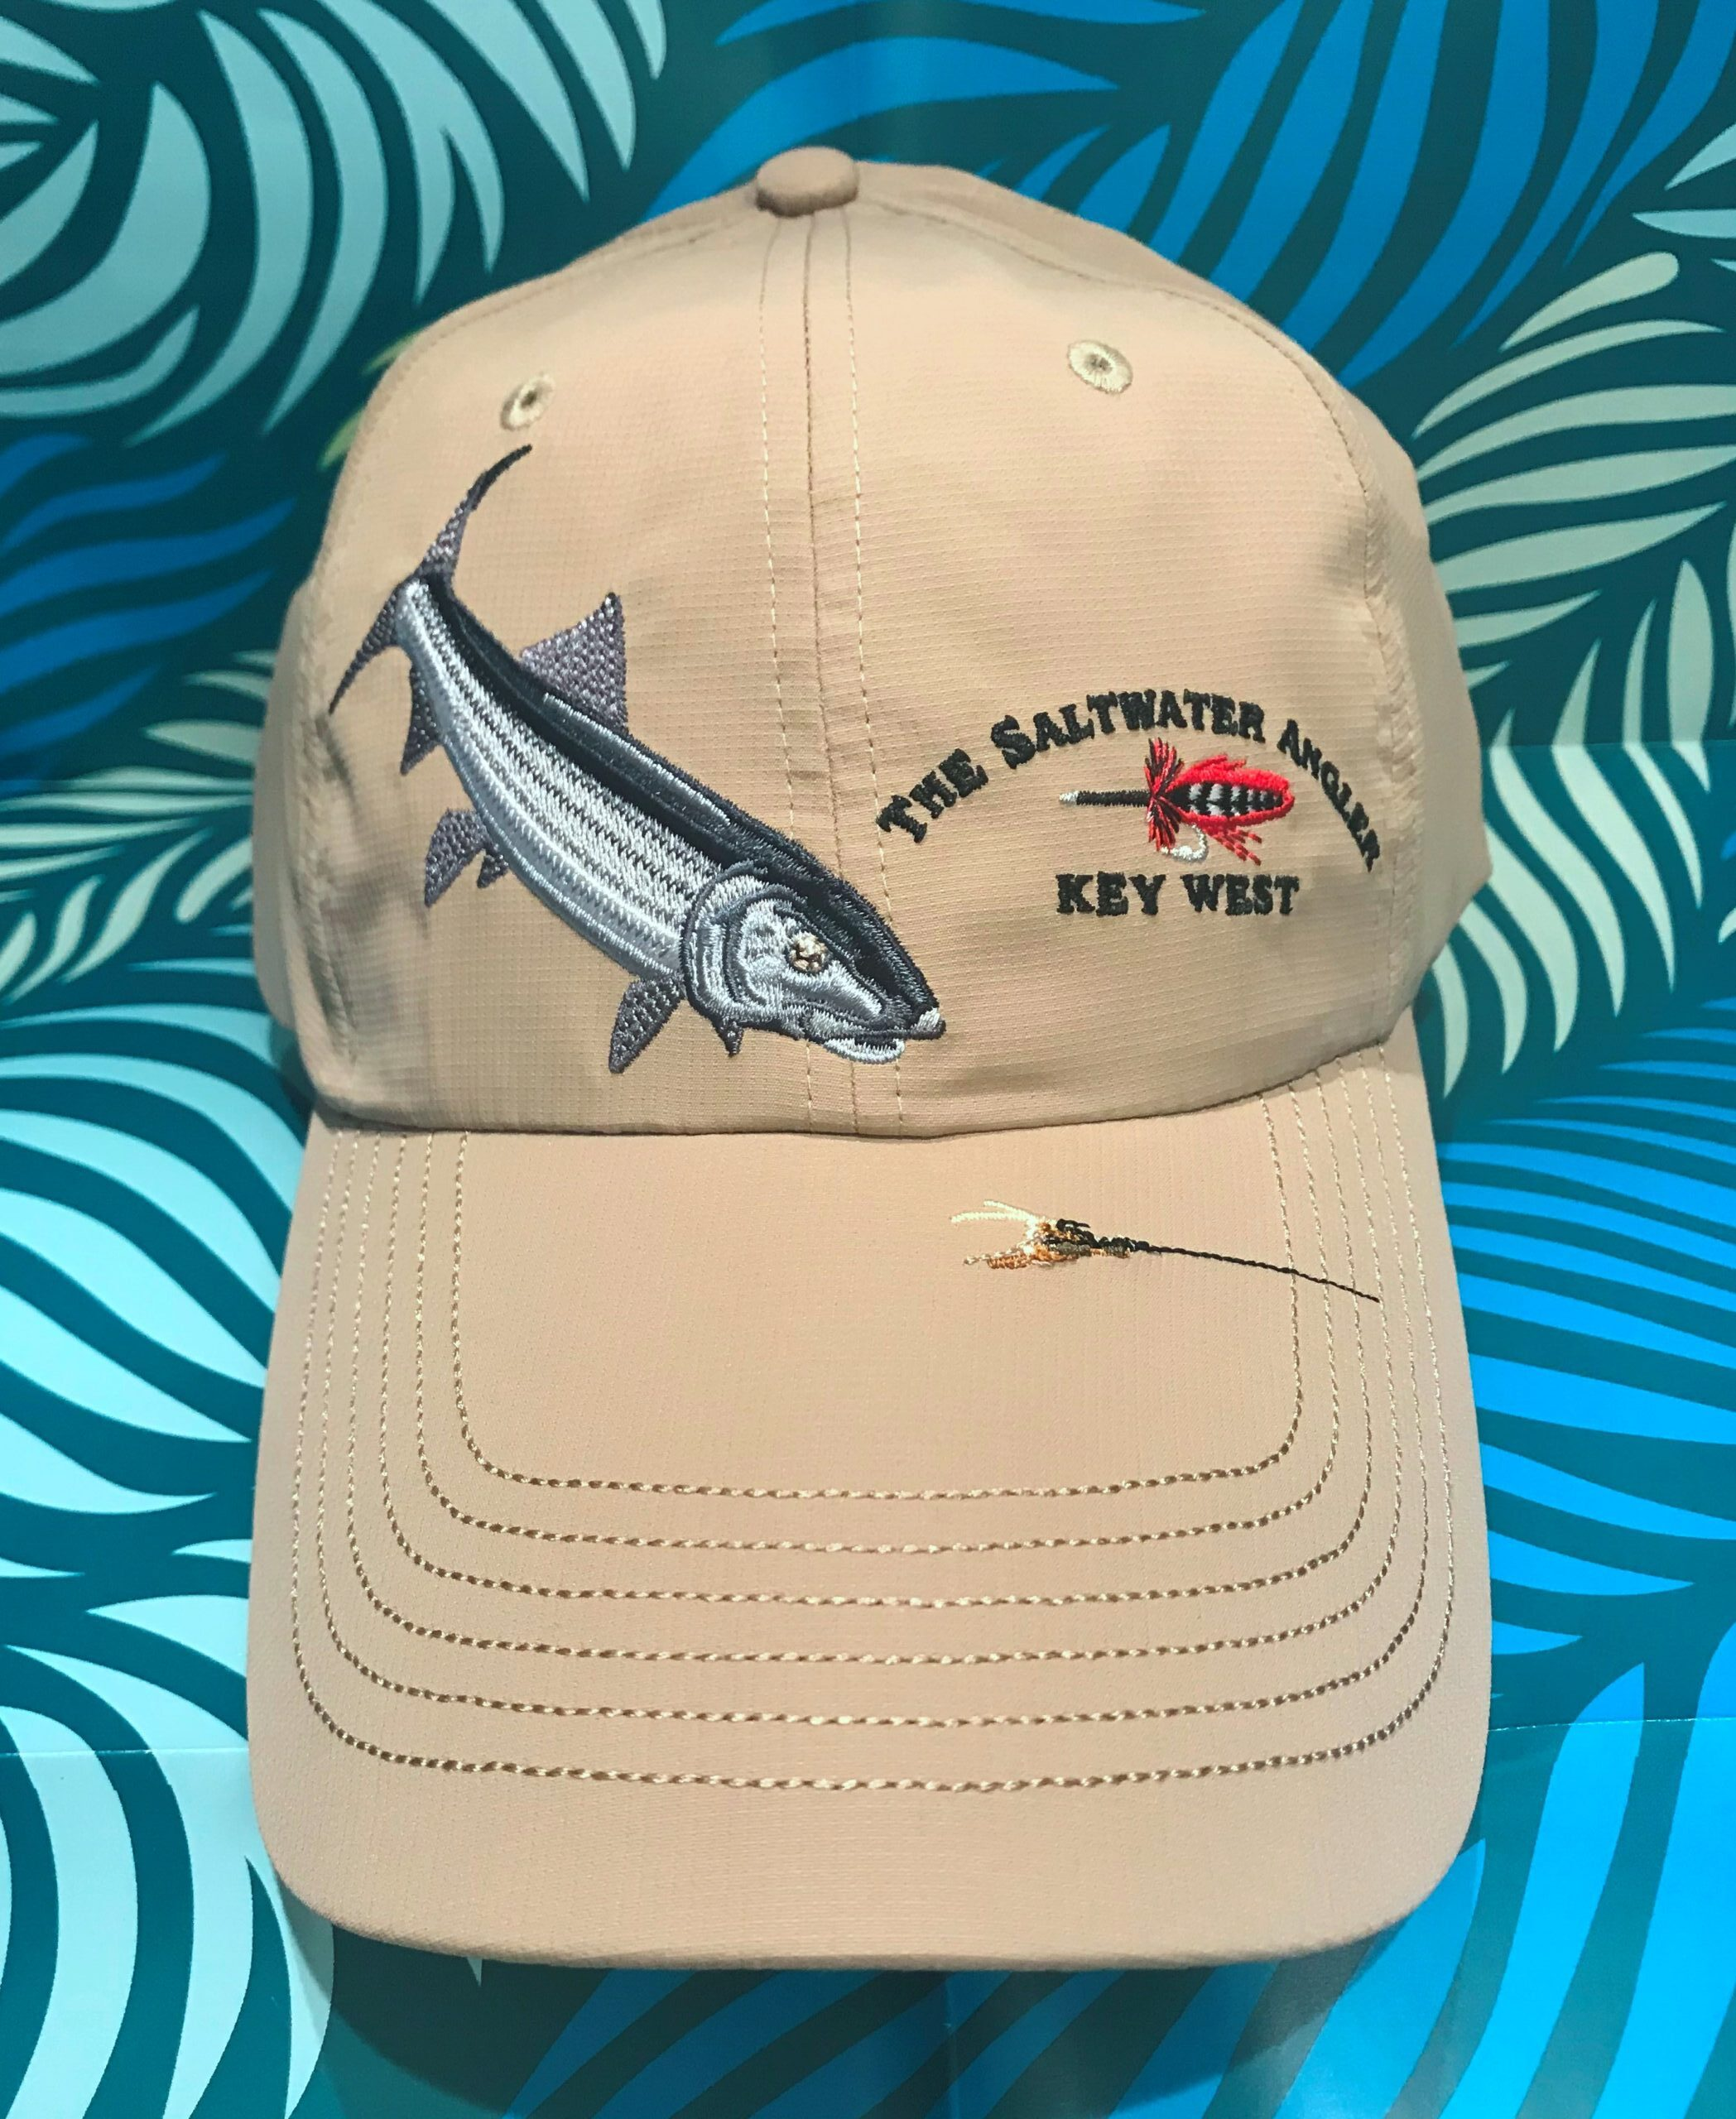 Saltwater Angler Long Bill Bonefish Cap